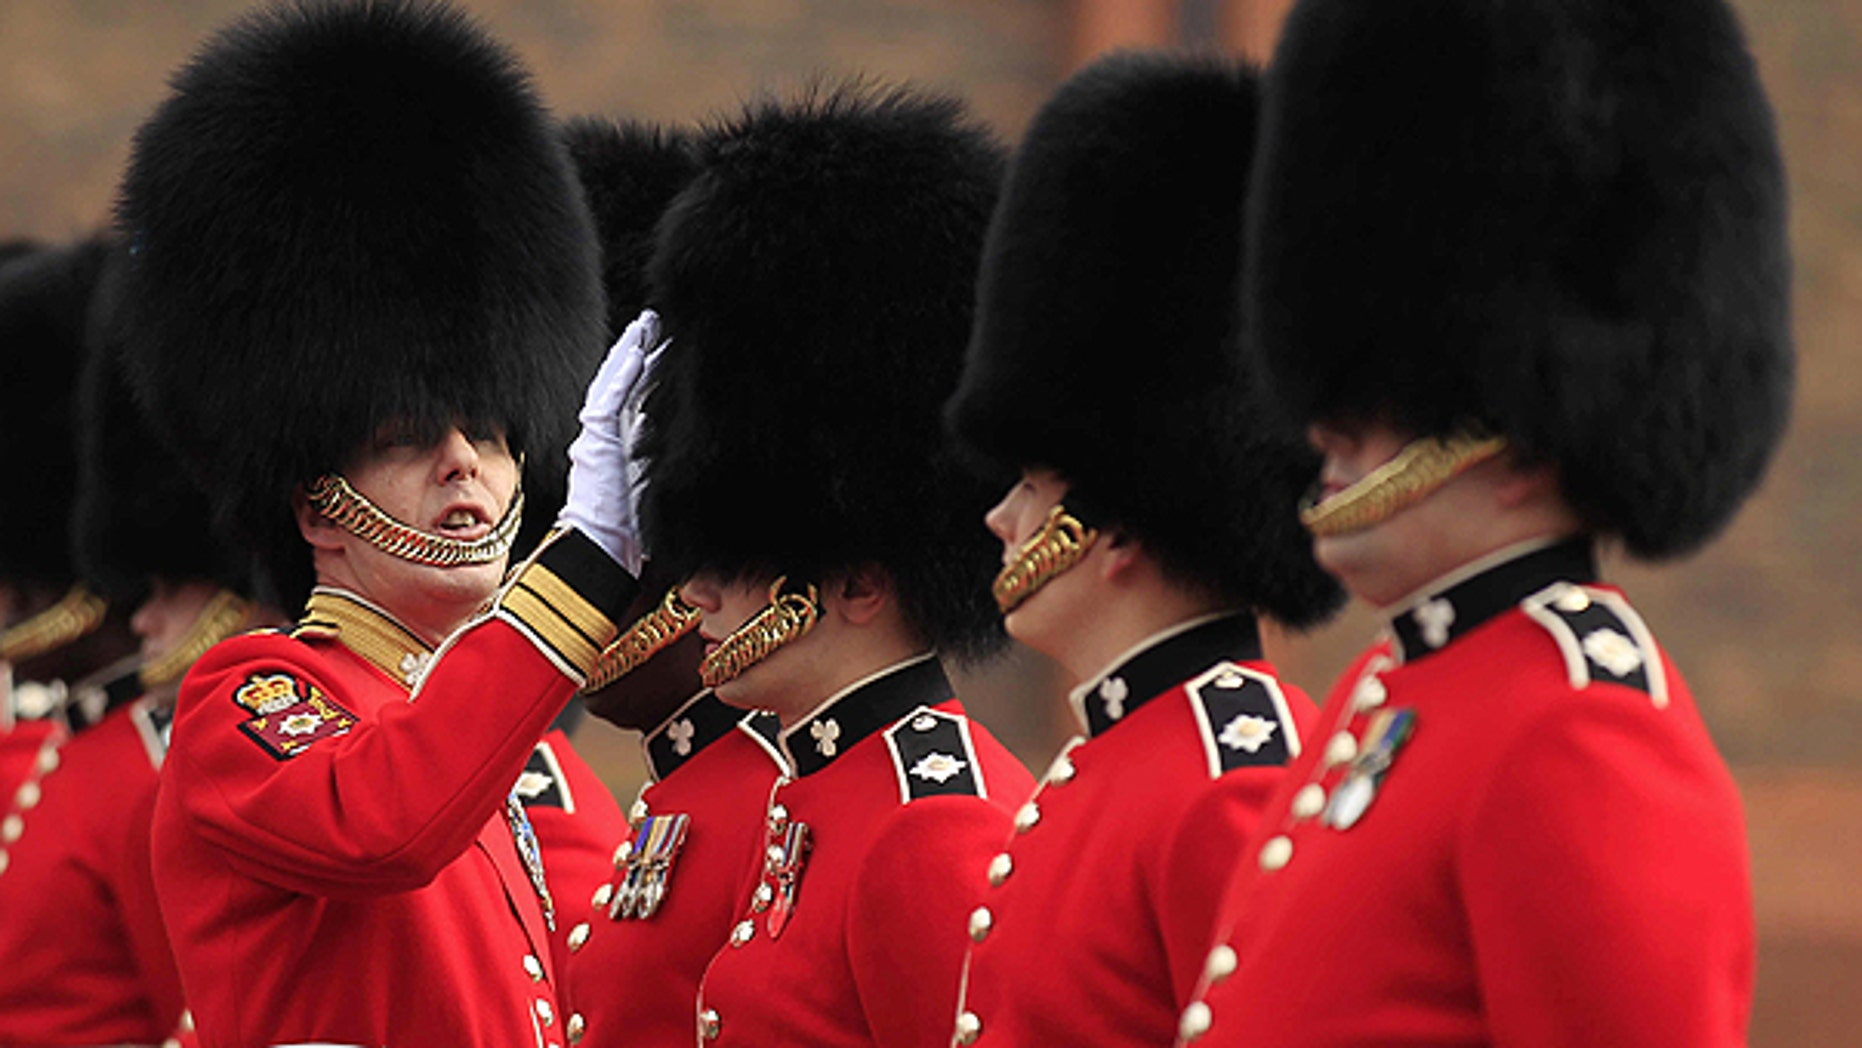 April 21: A Company Sergeant Major of the 1st Battalion Irish Guards inspects guardsmen's bearskins, as they take part in an inspection ahead of the royal wedding at their barracks in Windsor, England.